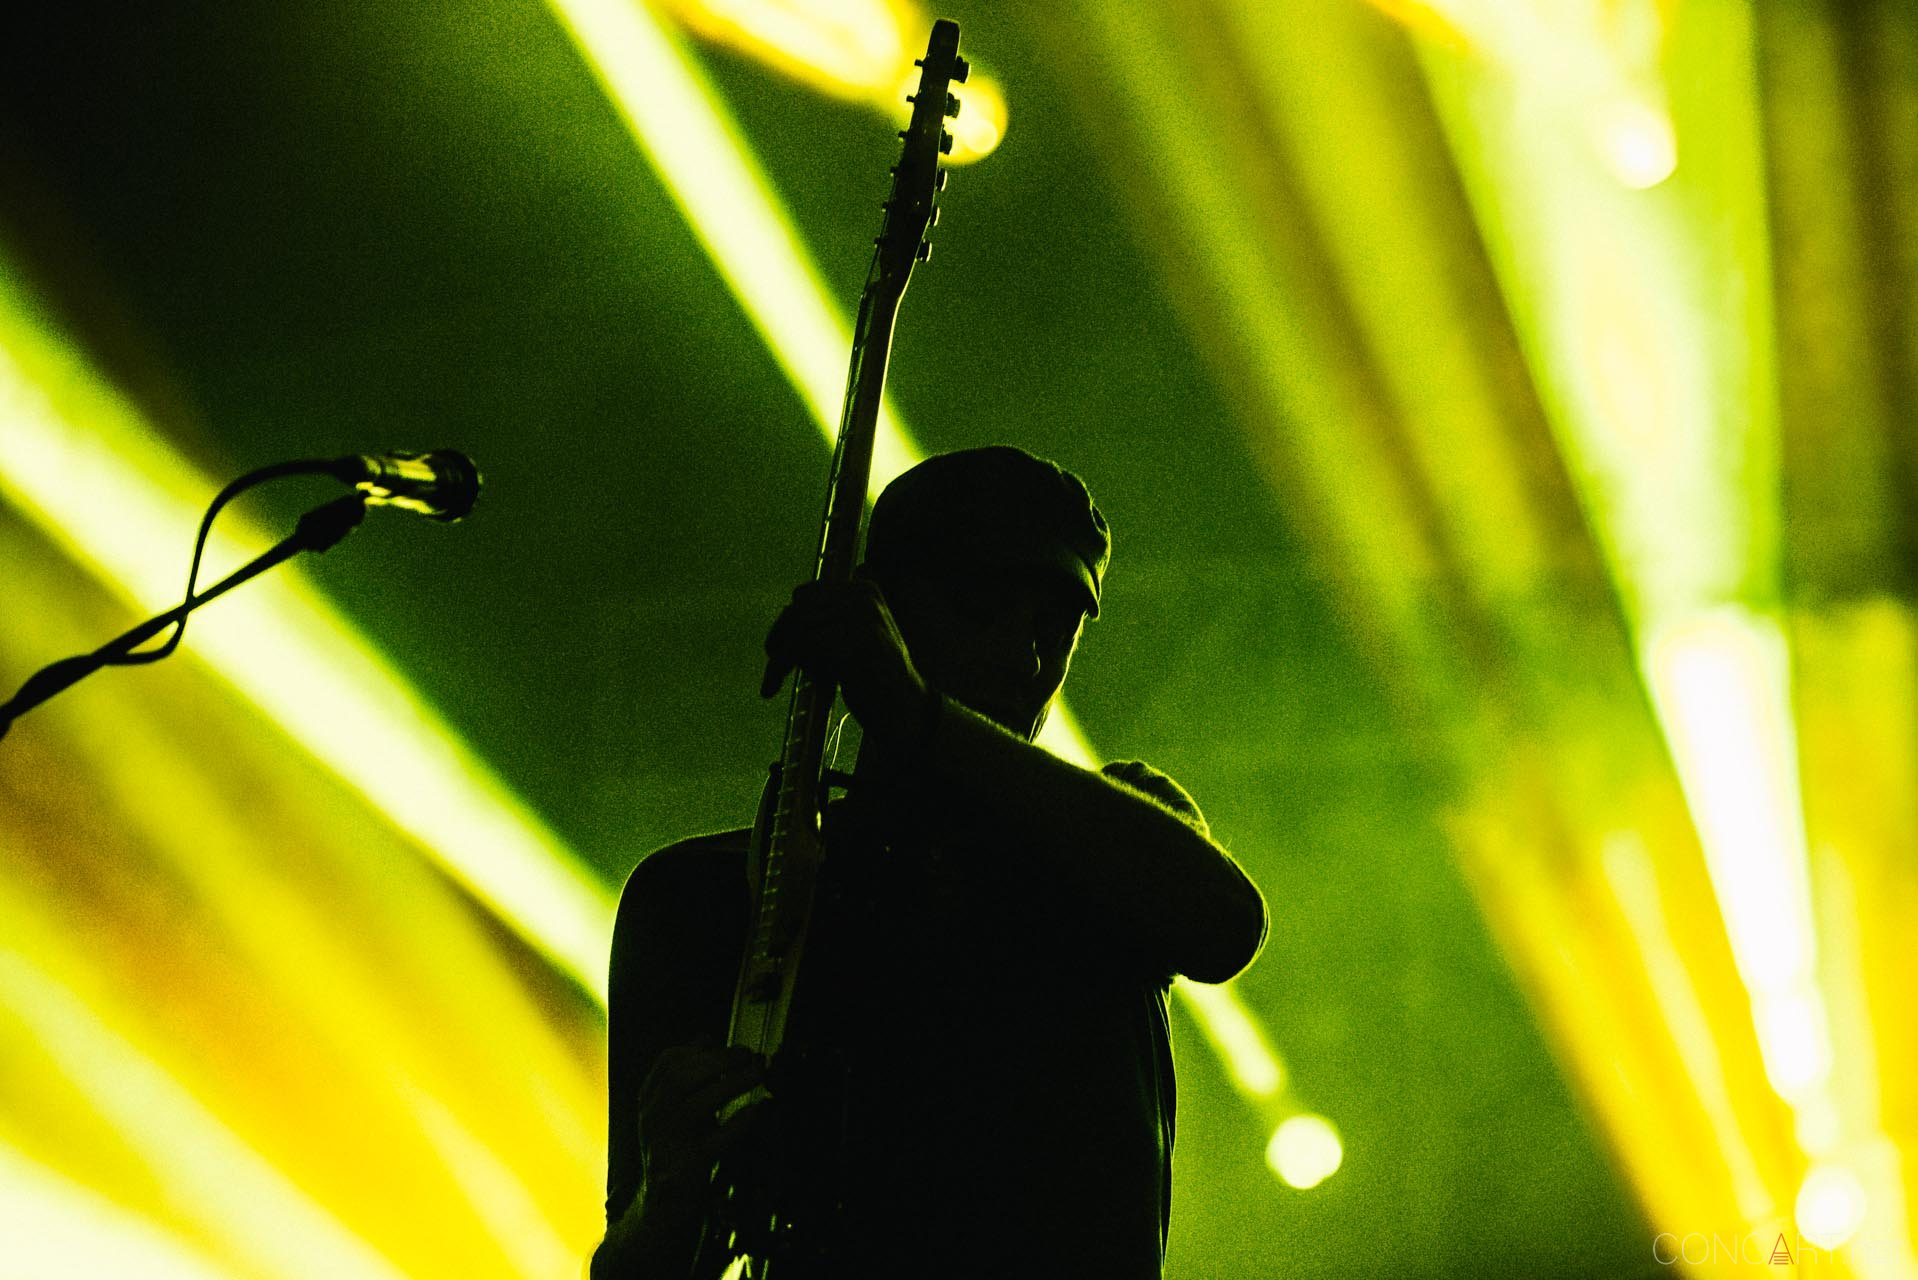 umphreys_mcgee_live_the_lawn_indianapolis_2013-62